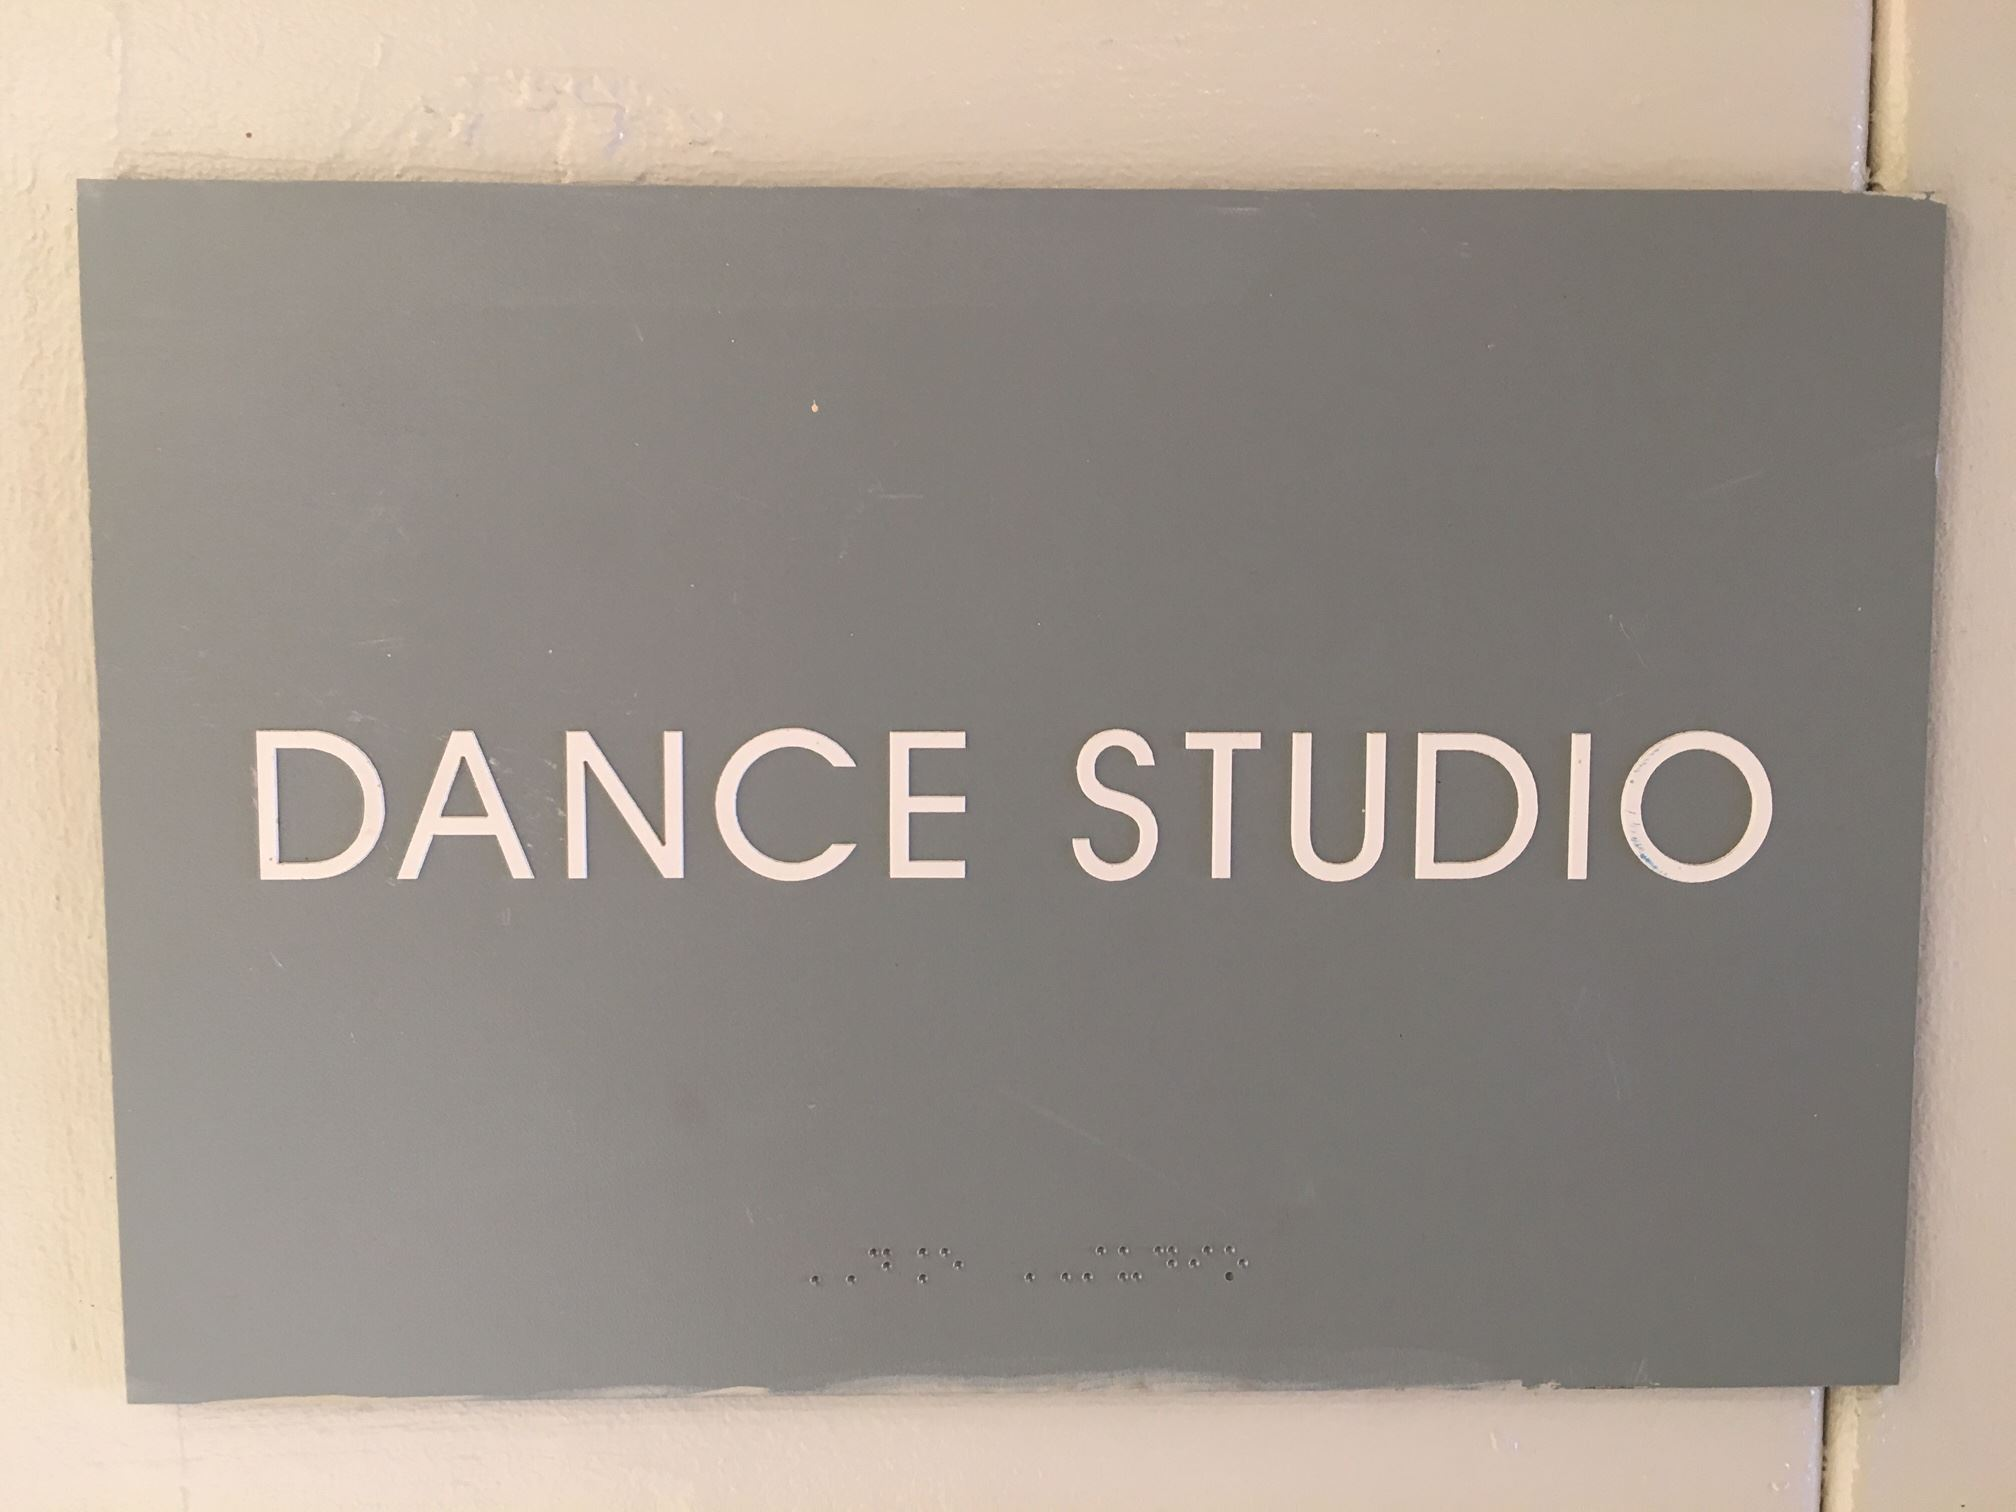 Dance Studio Signs